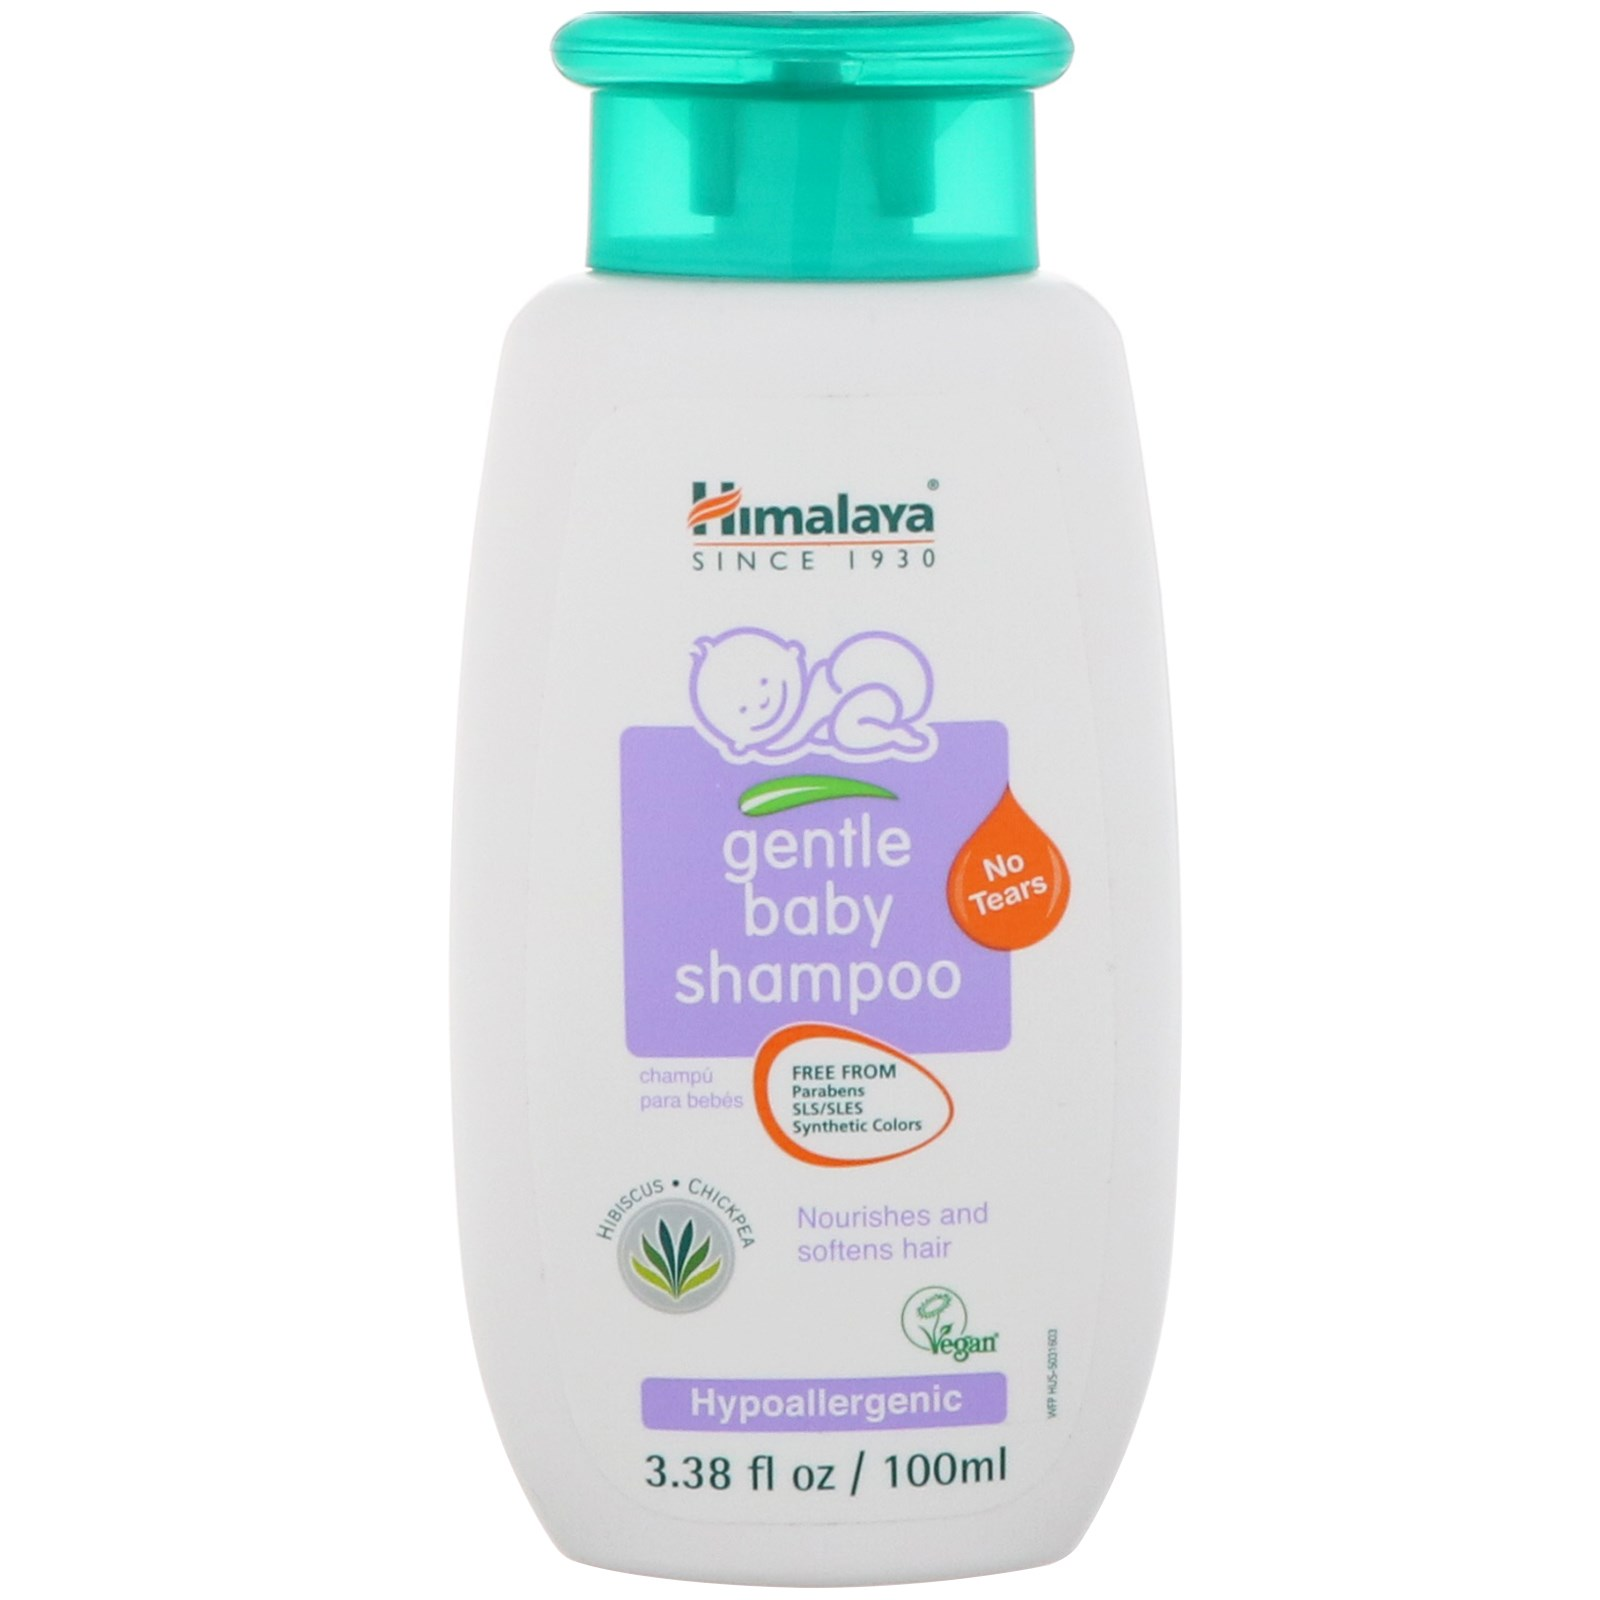 Himalaya, Gentle Baby Shampoo, 3 38 fl oz (100 ml)